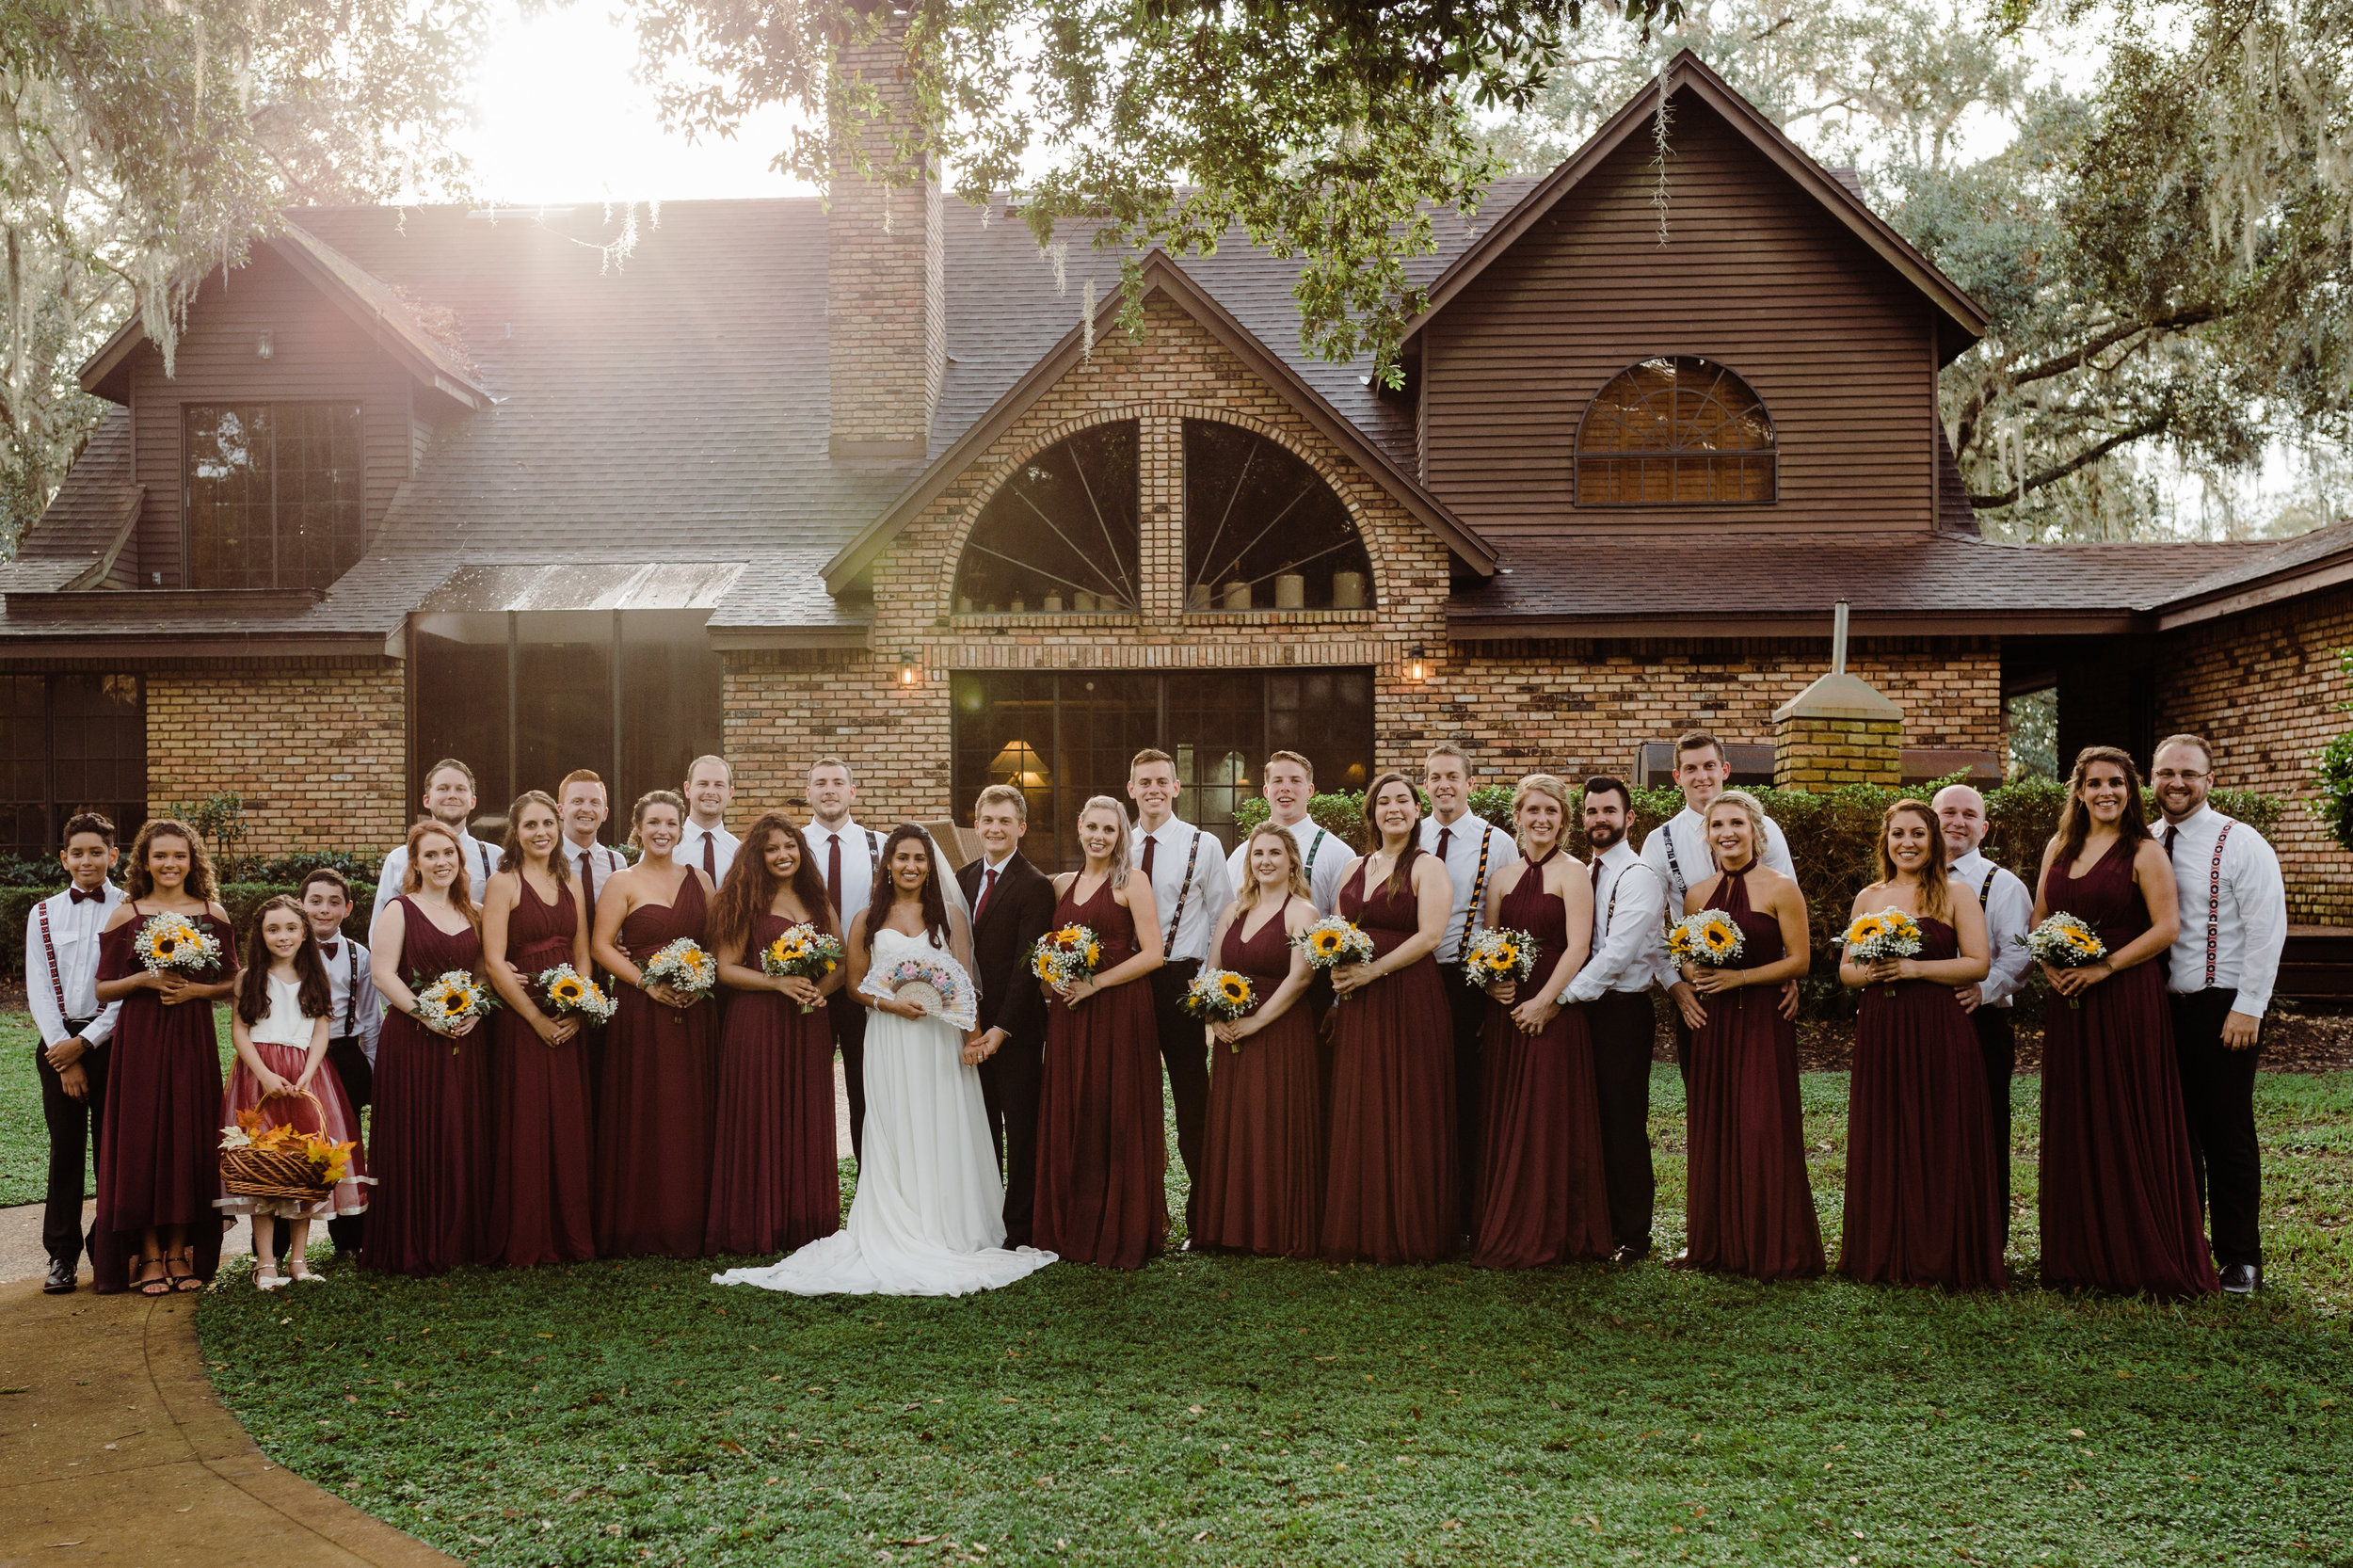 2017.10.08 Zach and Ashley Courson Wedding Club Lake Plantation (463 of 1079).jpg